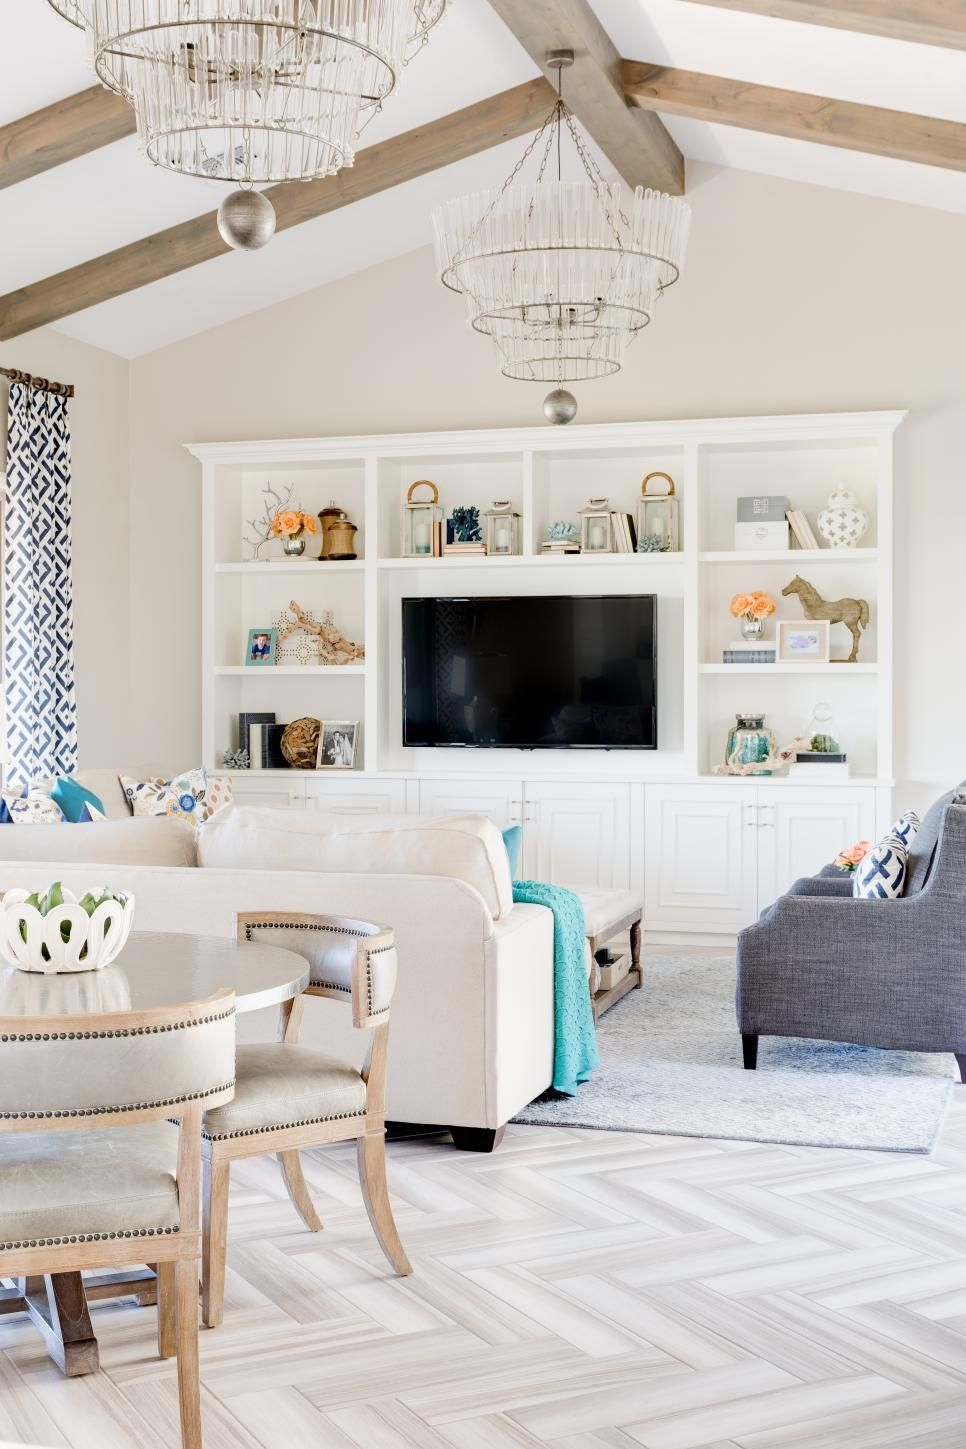 14 Ways to Decorate With Alabaster White | Color Palette and Schemes for Rooms in Your Home | HGTV >> http://www.hgtv.com/design/decorating/color/14-ways-to-decorate-with-alabaster-white-pictures?soc=pinterest